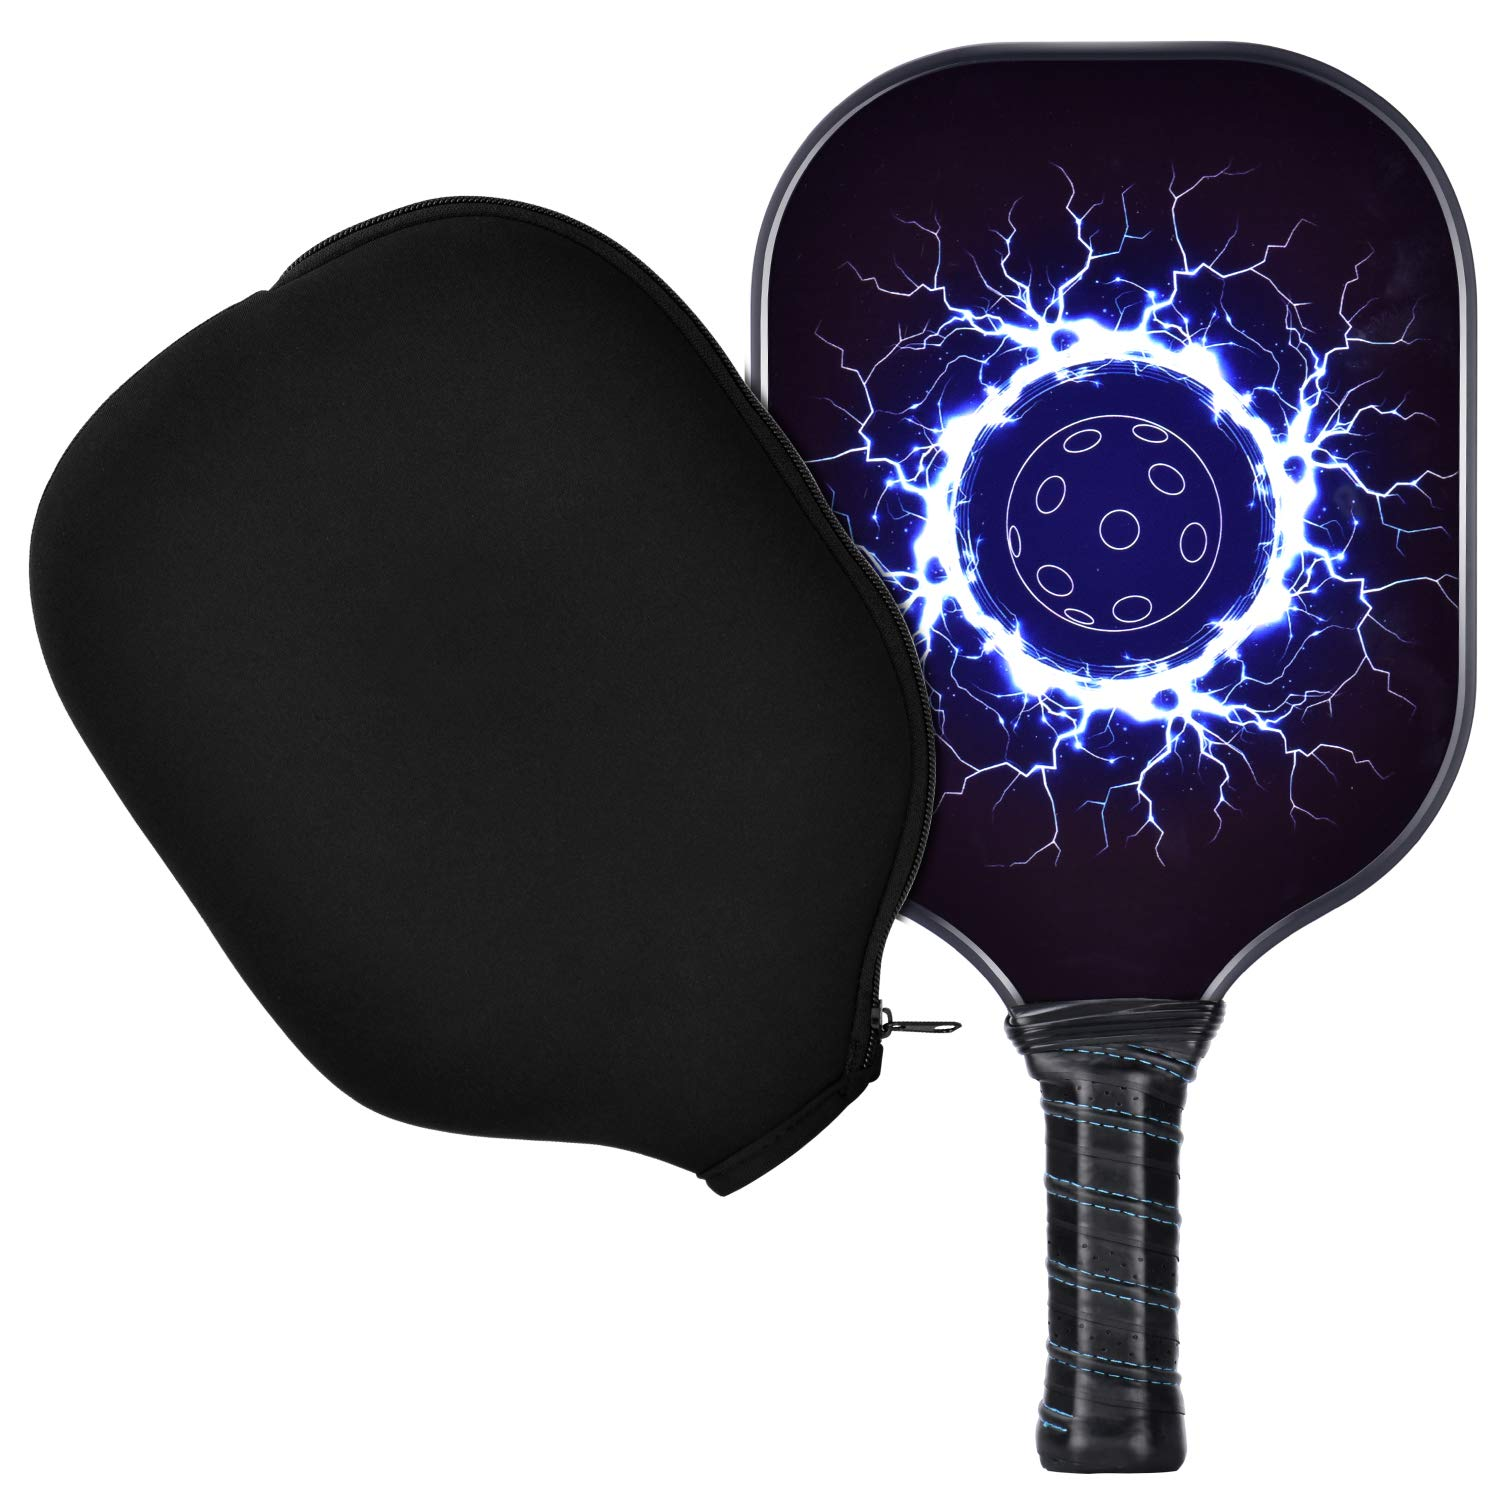 Pickleball Paddle Bundle Set Includes One Graphite Paddles +Classic Rackets Feature Graphite Face PP Honeycomb Core